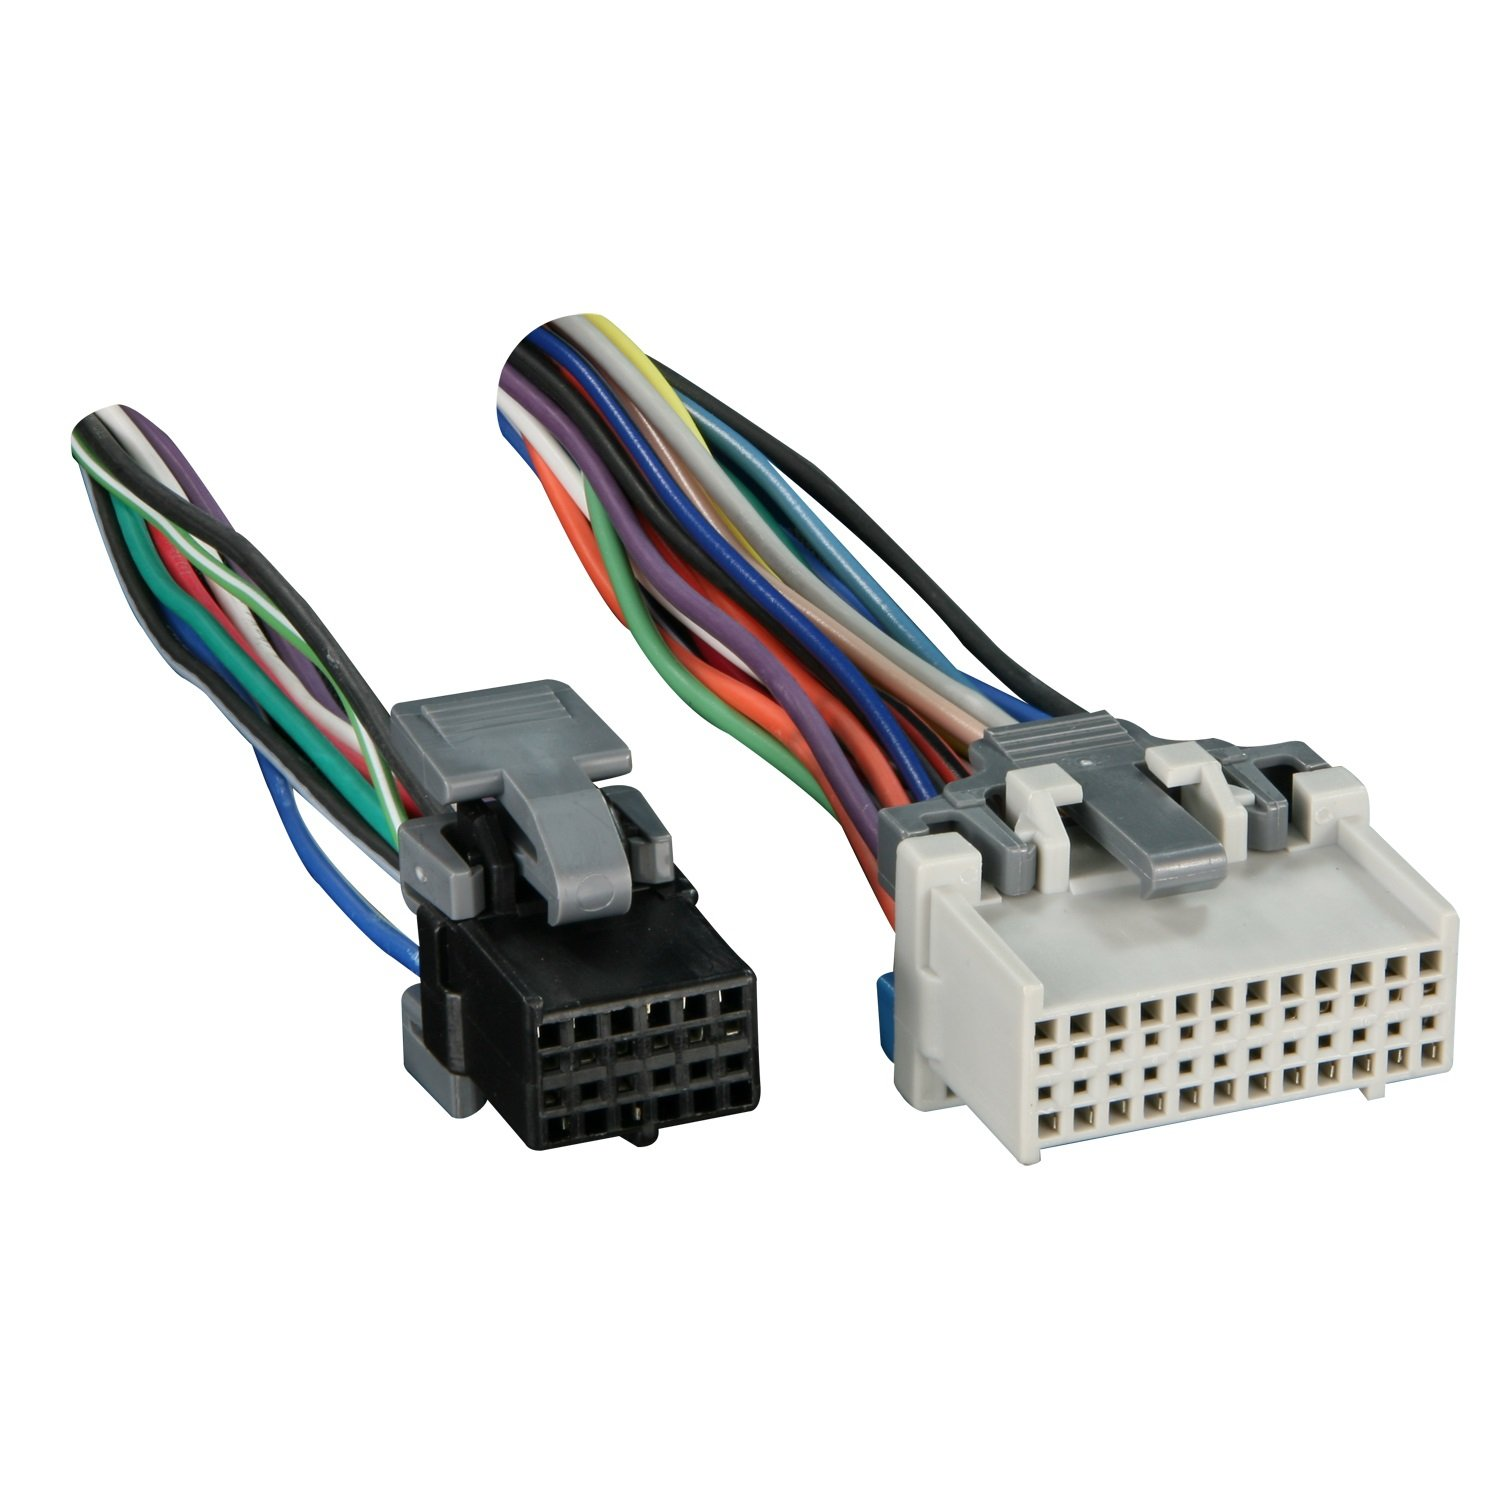 711log4bdML._SL1500_ amazon com metra turbowires 71 2003 1 wiring harness car electronics what is a wire harness in a car at crackthecode.co